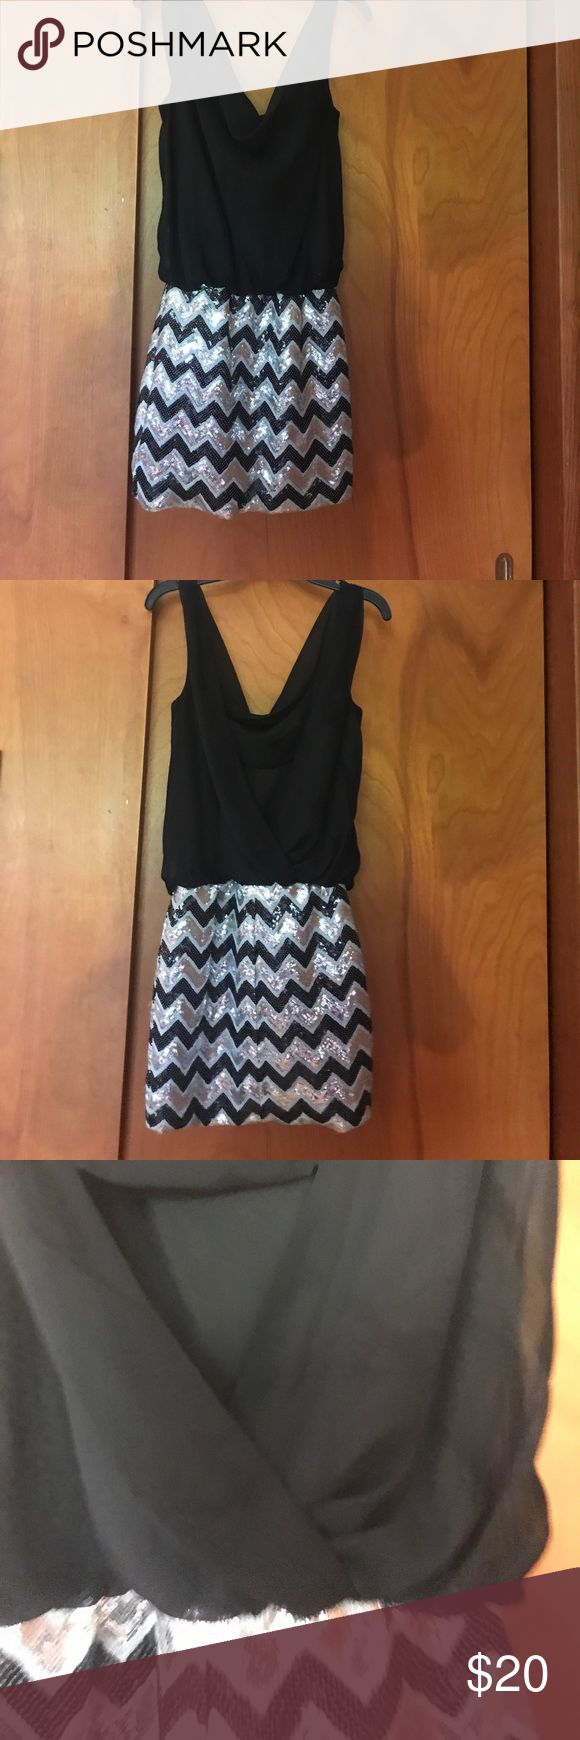 Night Out Dress Top is blousy and has a small cut out in the back, the skirt part is sequenced with silver and black chevron. The dress fits tight on the bottom half and blousy on the top, perfect for a night out (: Dresses Mini